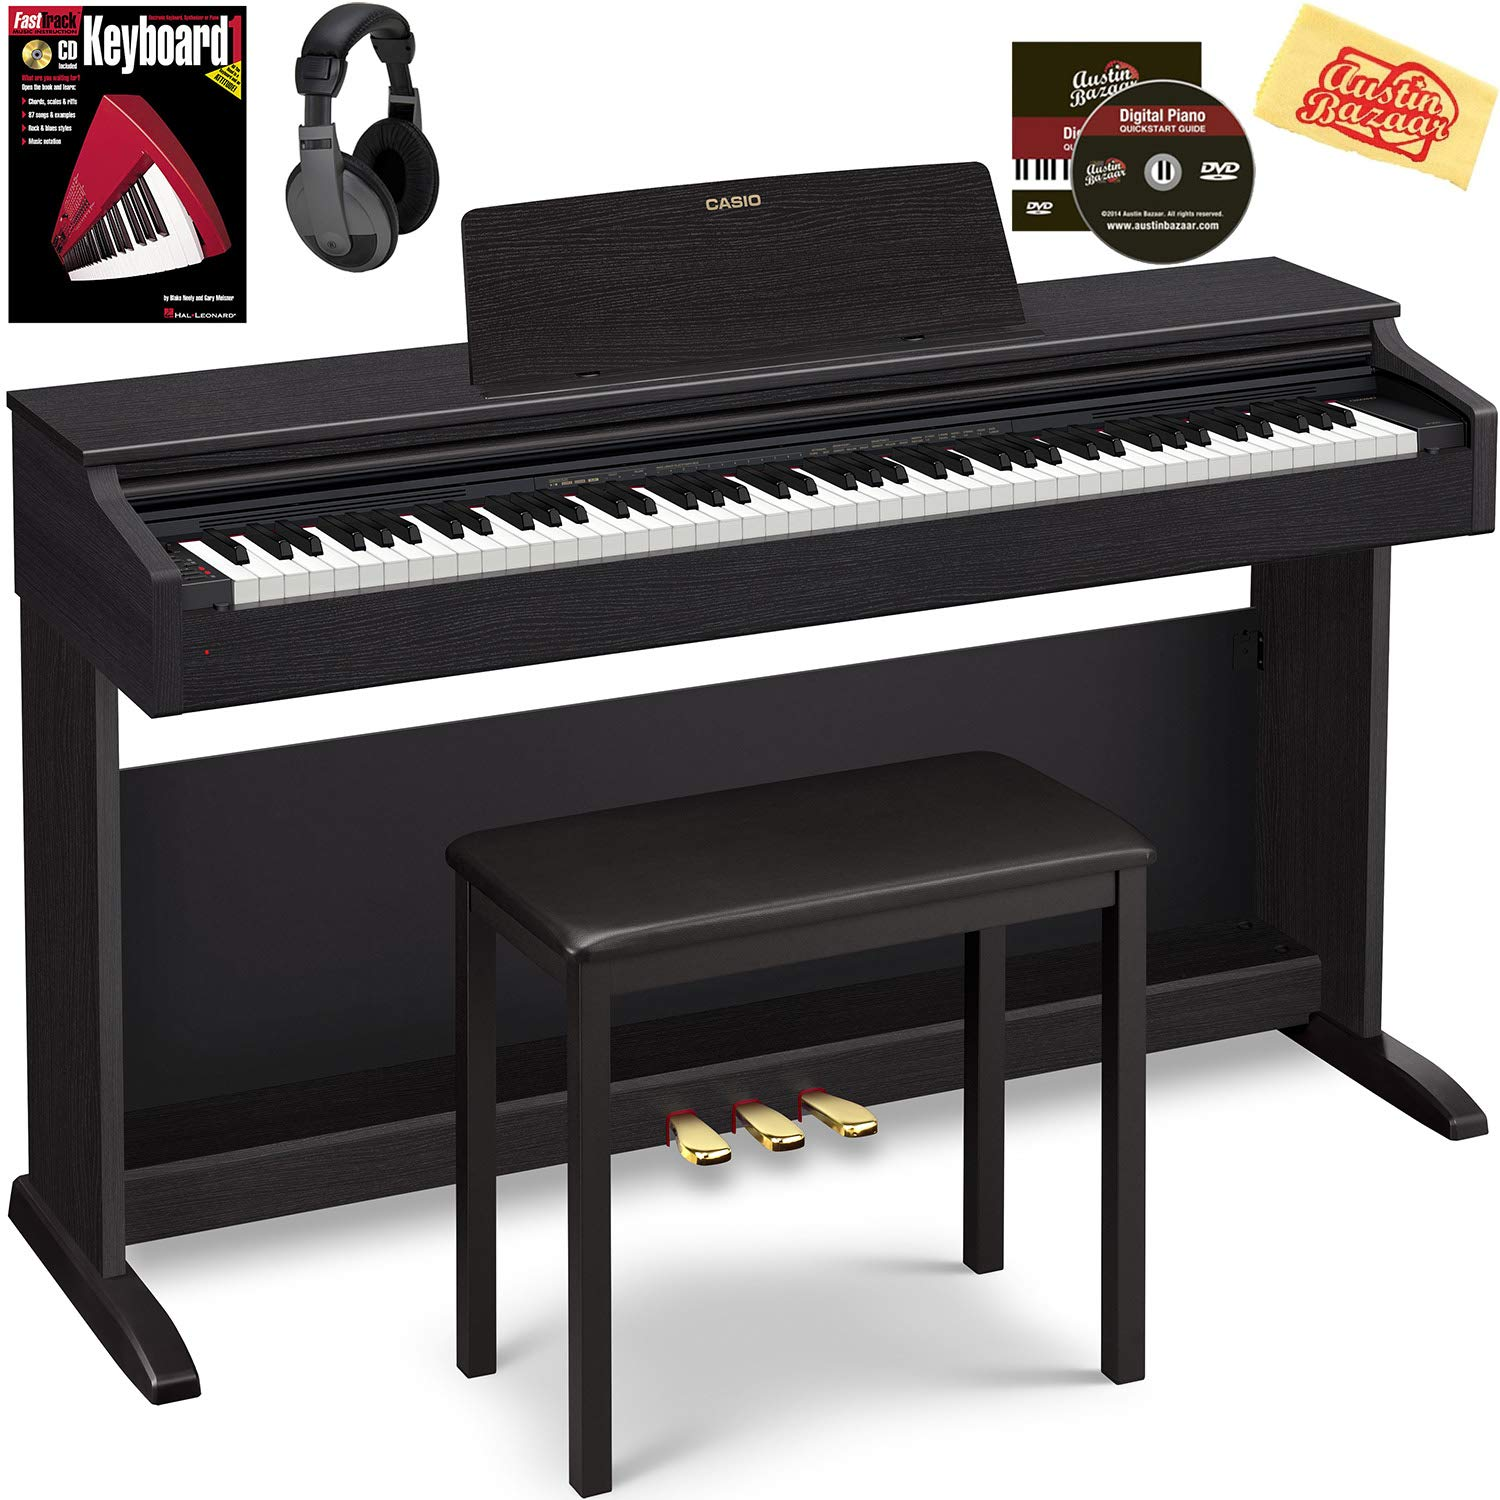 Casio AP-270 Celviano Digital Cabinet Piano - Black Bundle with Furniture Bench, Headphones, Online Lessons, Austin Bazaar Instructional DVD, and Polishing Cloth by Casio